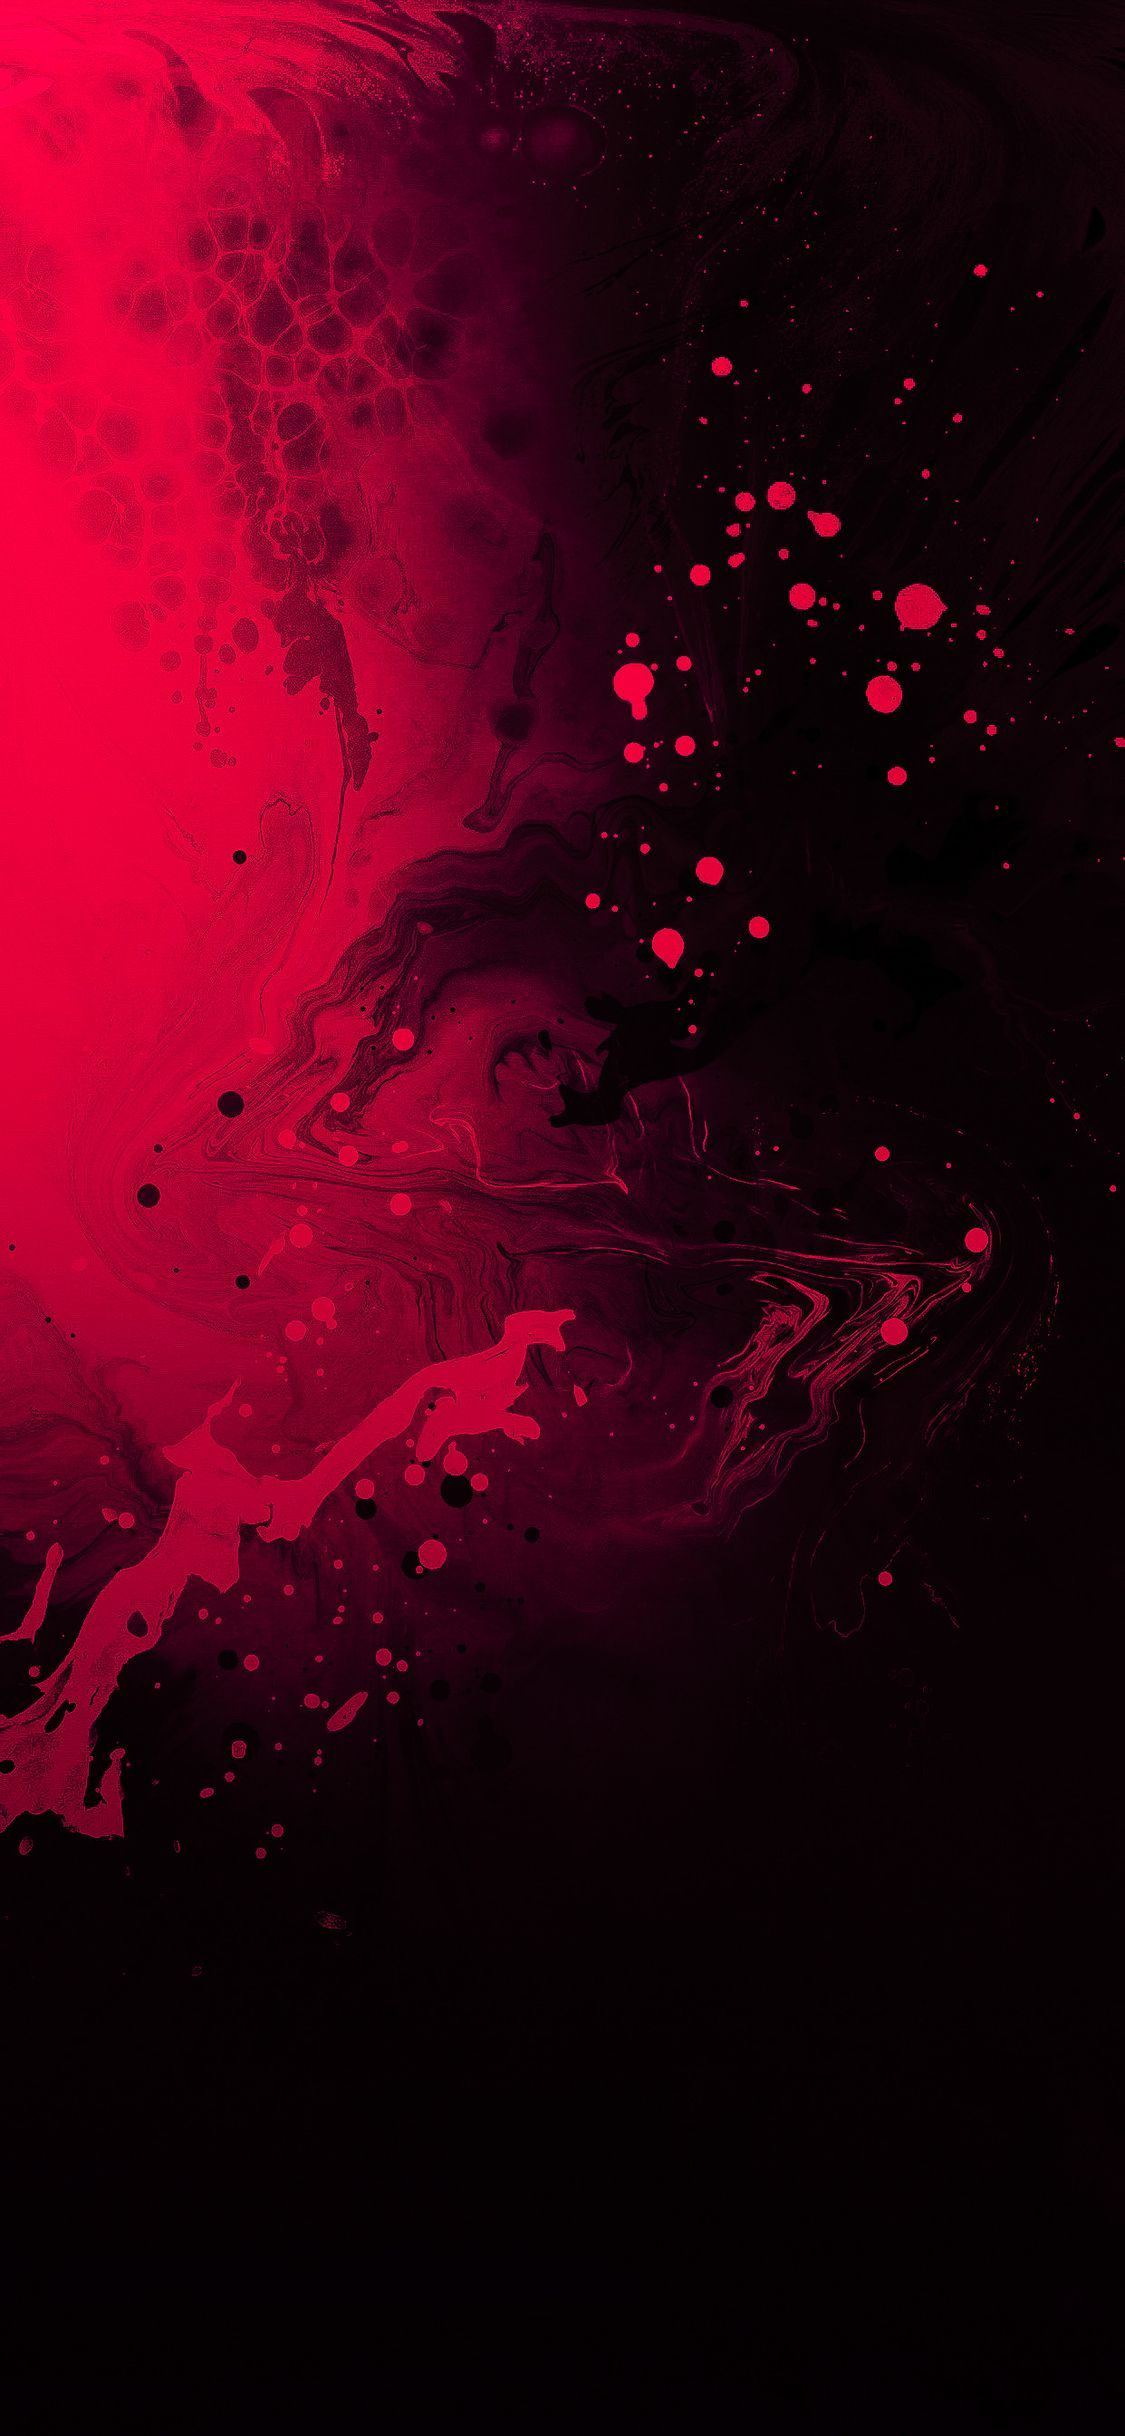 iPhone 21 Pro Red Wallpapers   Top Free iPhone 21 Pro Red ...